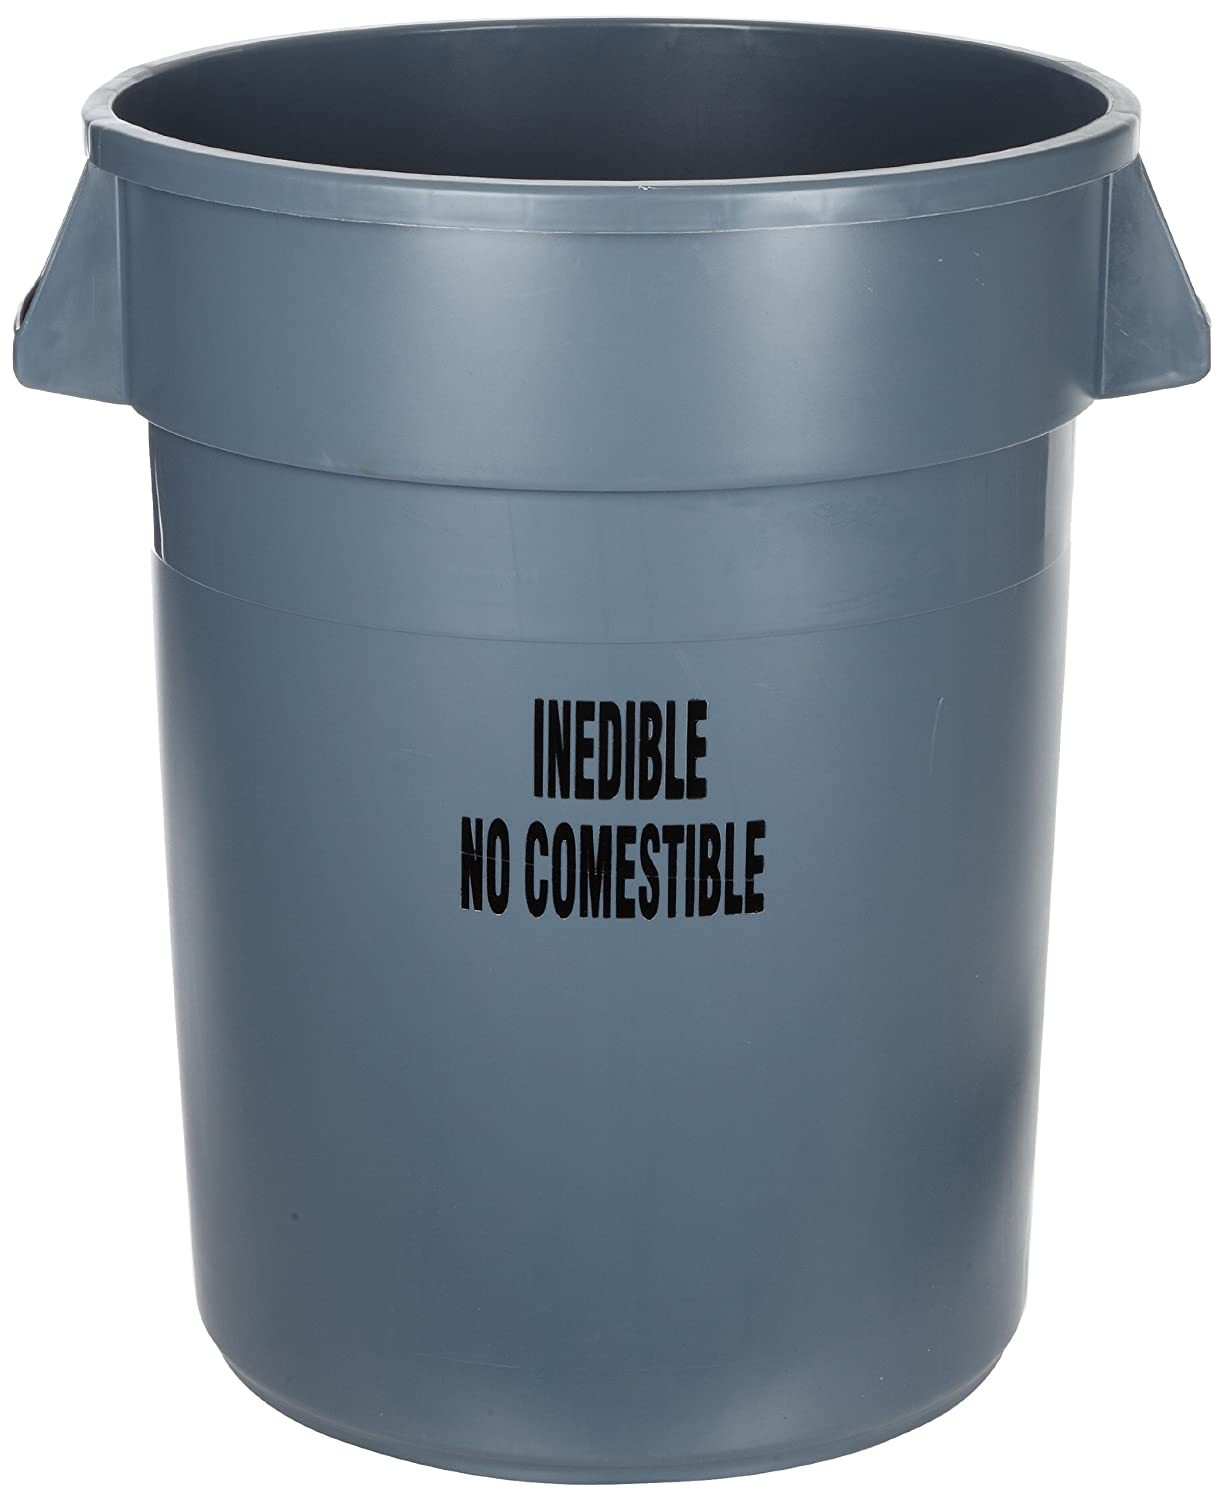 Rubbermaid Commercial FG264356GRAY Brute List price New Orleans Mall witho Plastic Can Trash